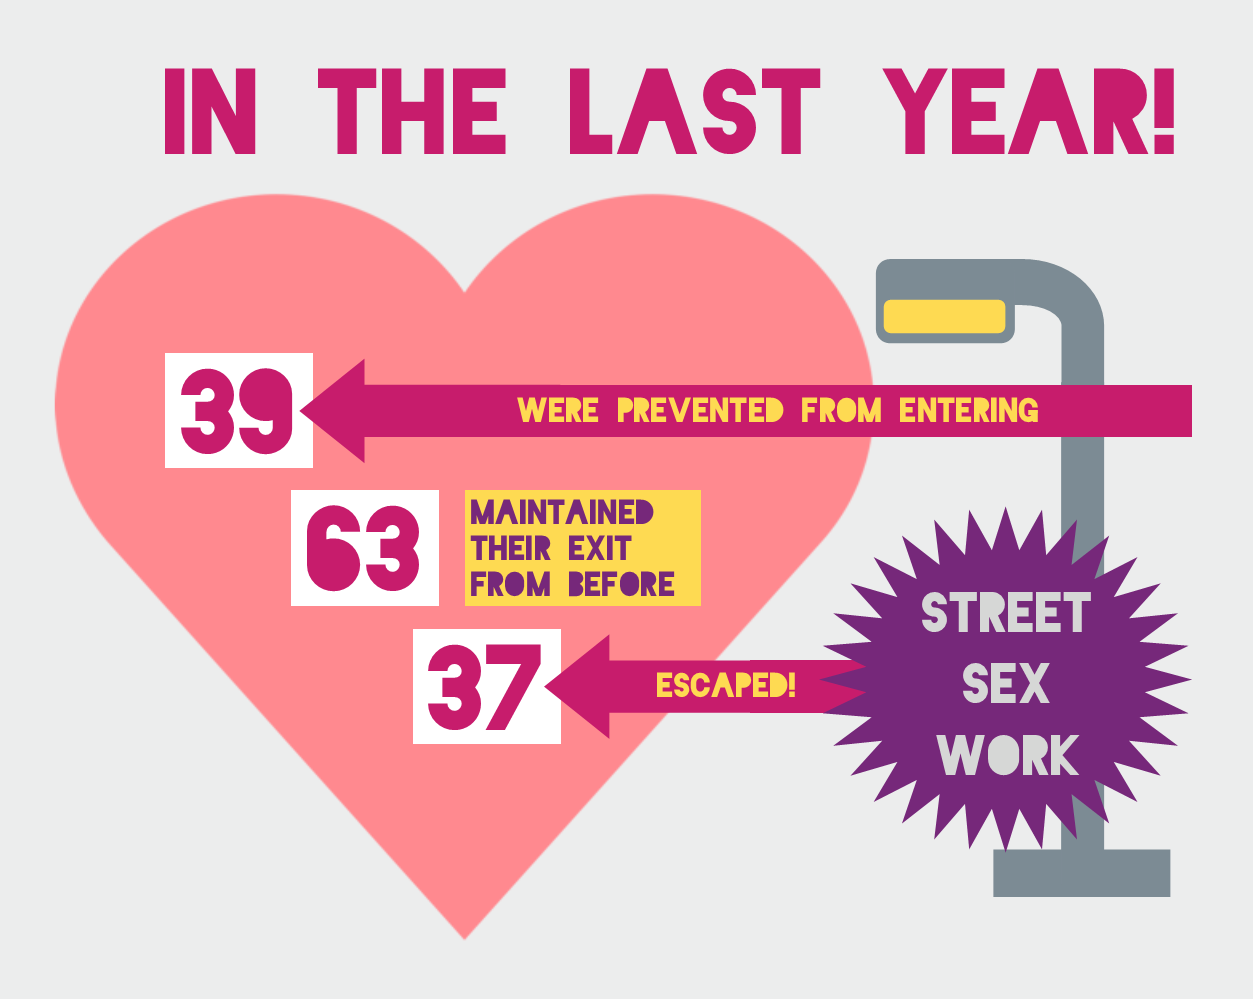 last year 37 women exited street sex work, 39 were prevented from entering and 63 maintained their exit